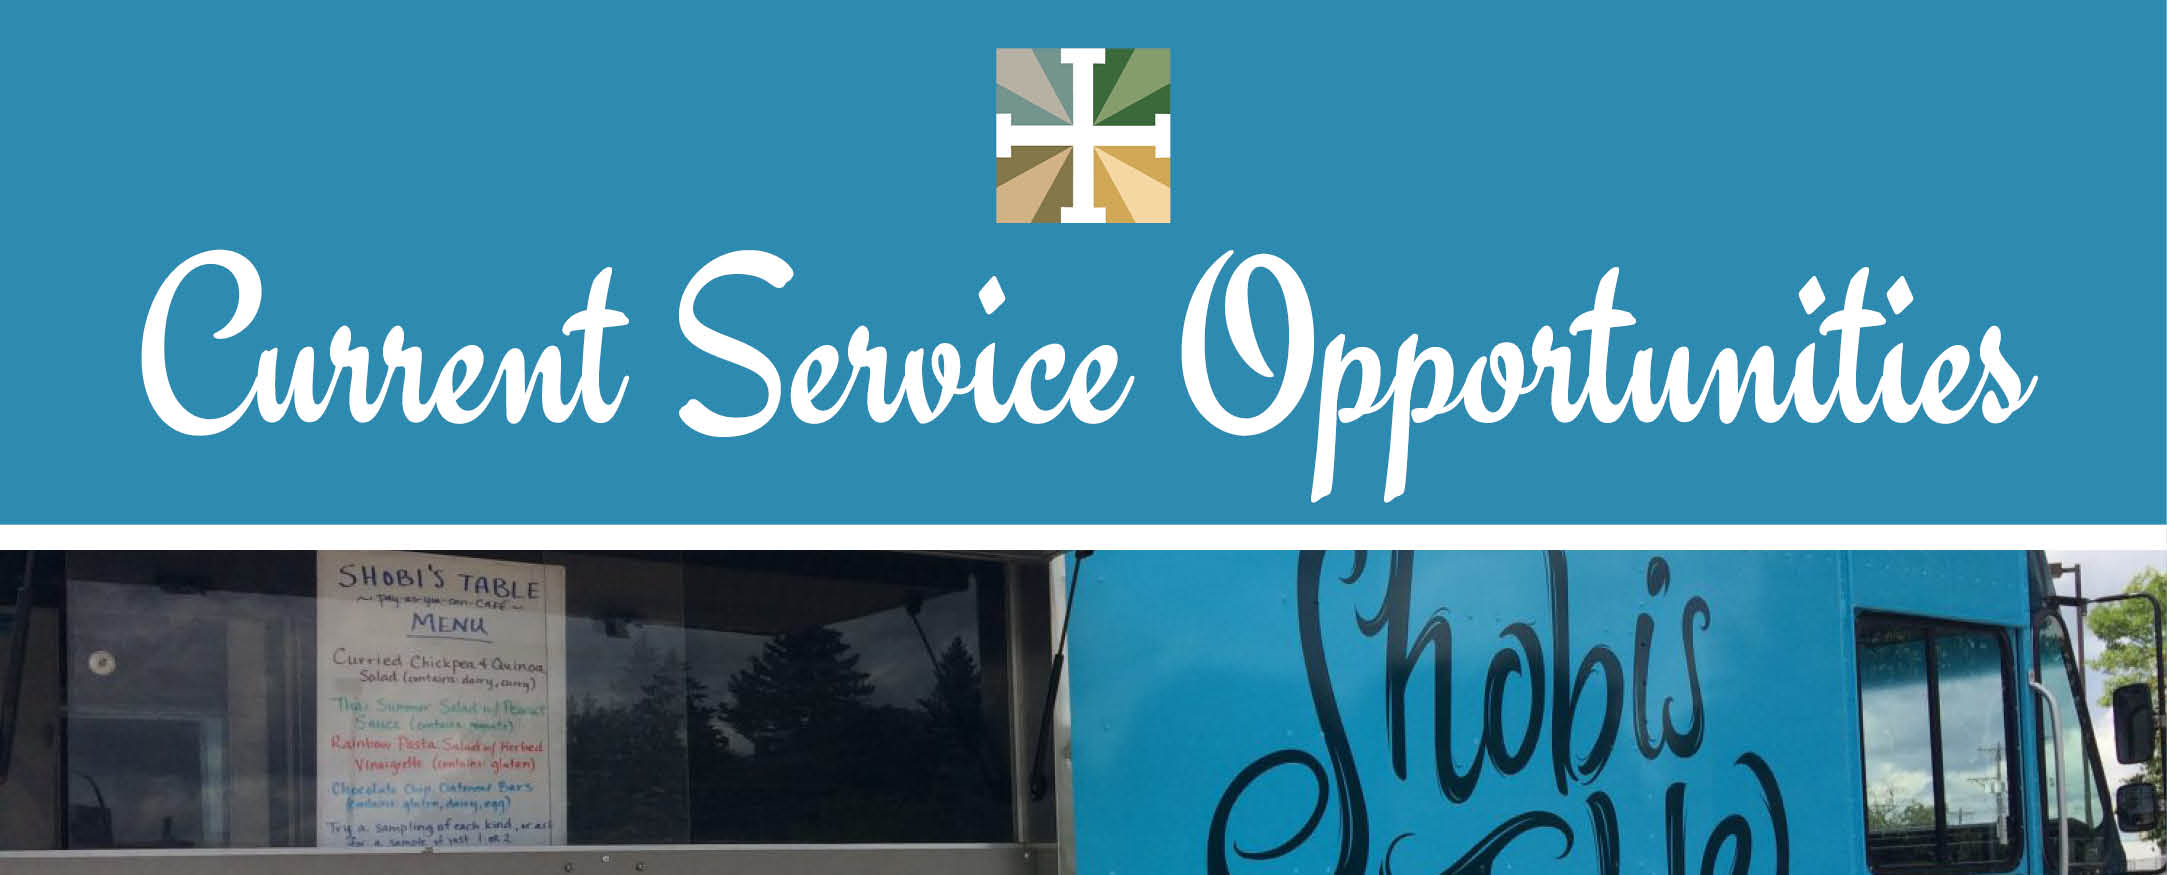 Current service opportunities